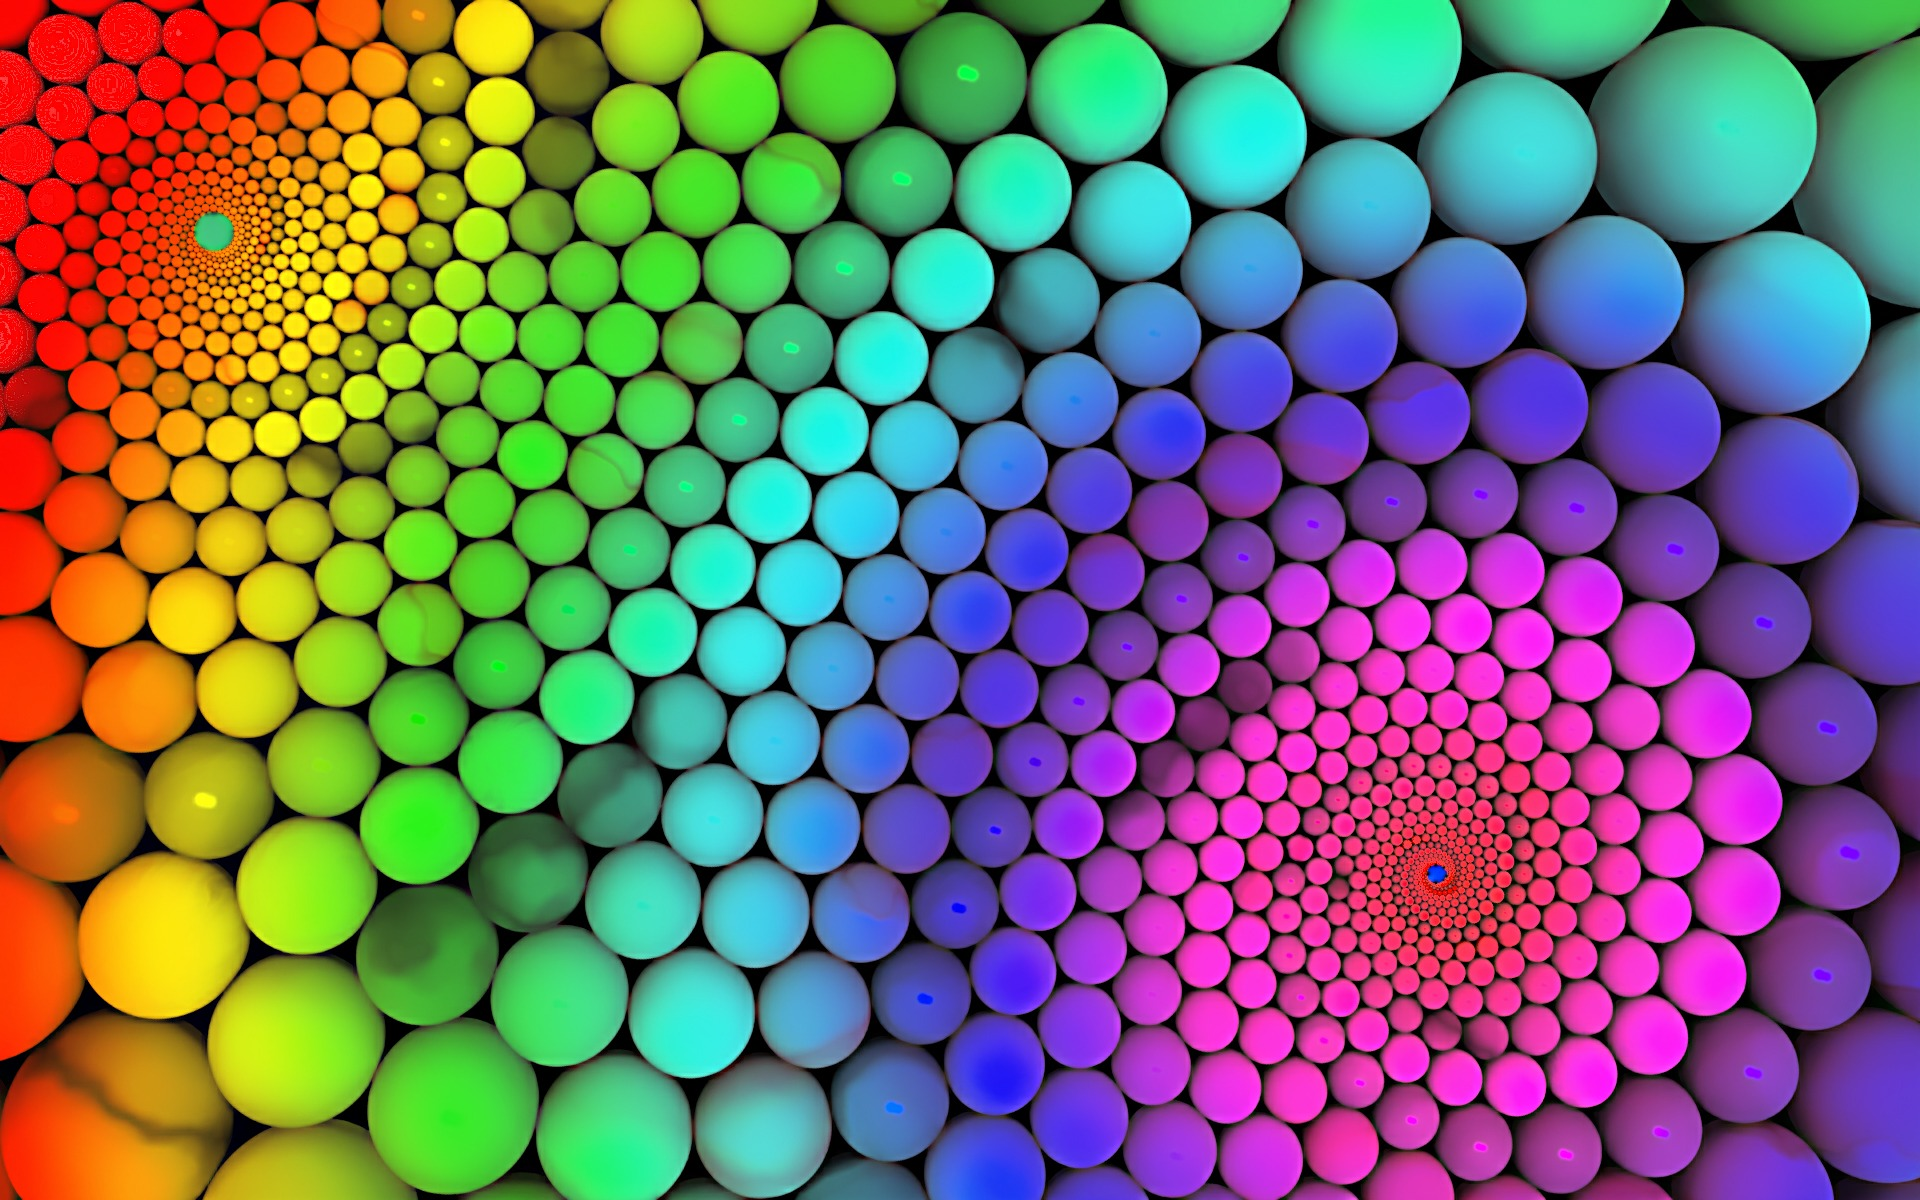 Cool-Colorful-3d-Rainbow-HD-High-Resolution-Full-Size-wallpaper-wp3604287